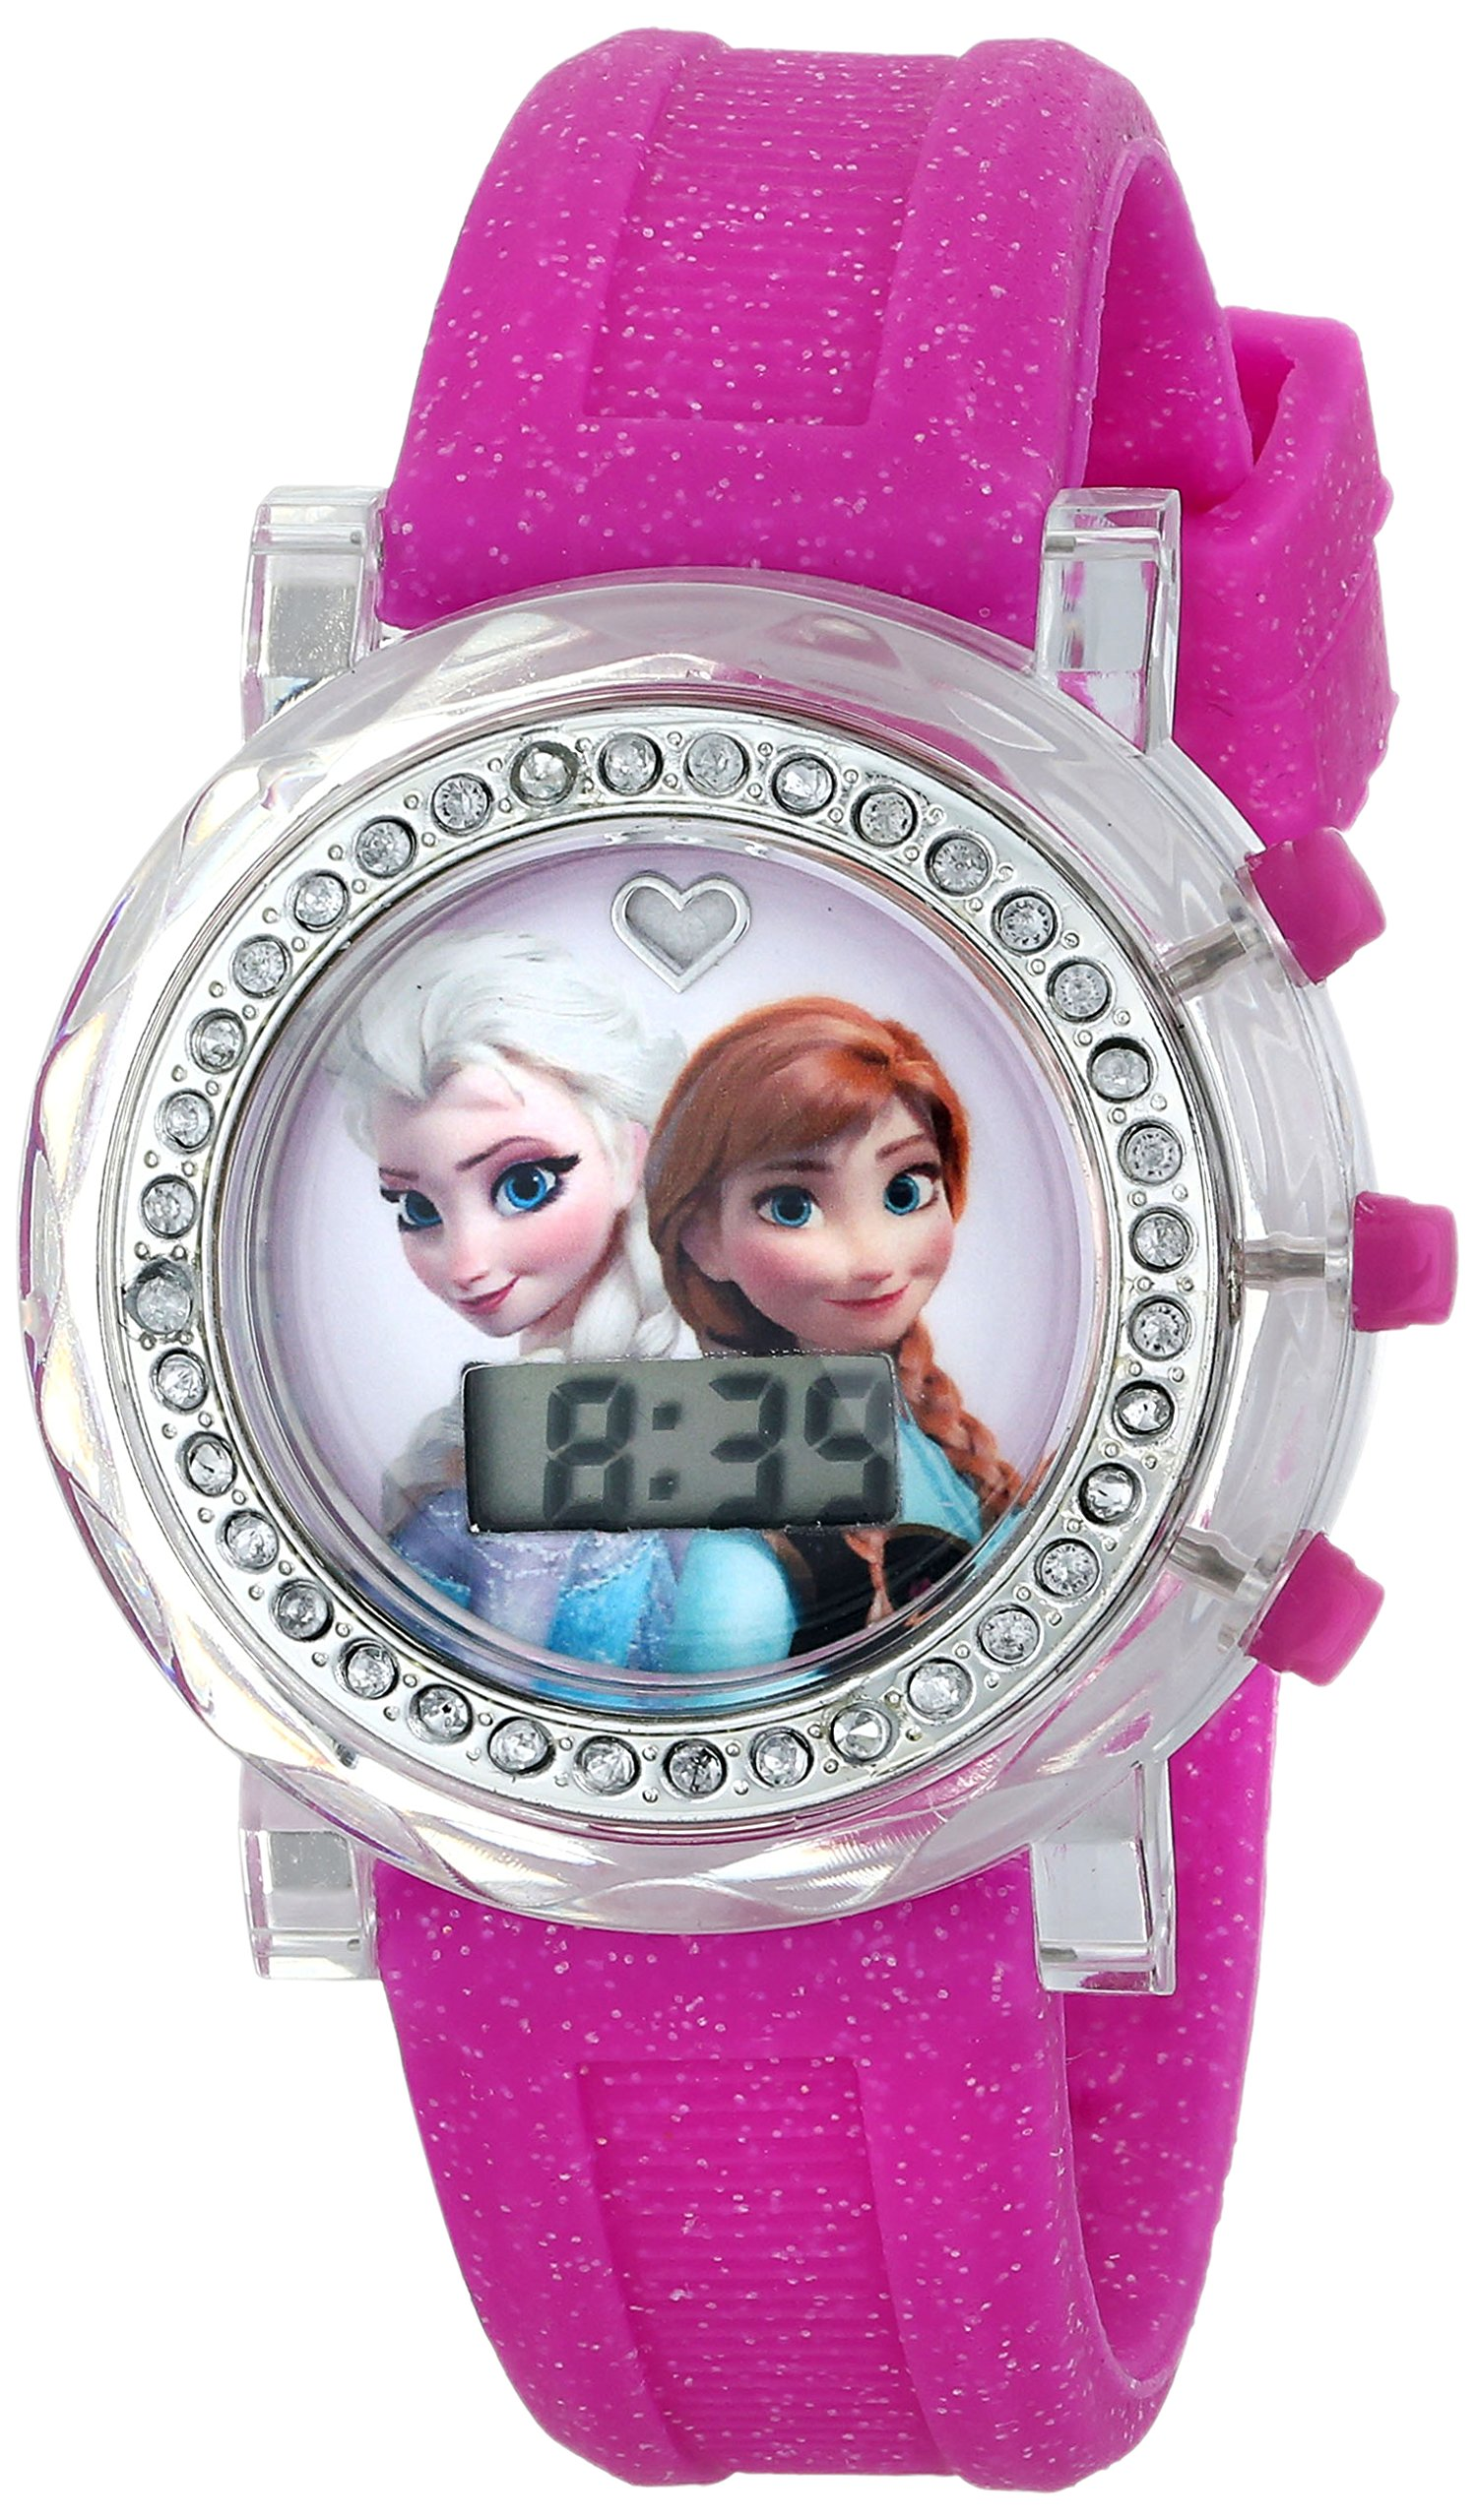 Kids' FZN3580 Frozen Anna and Elsa Flashing-Dial Watch with Glitter Pink Rubber Band